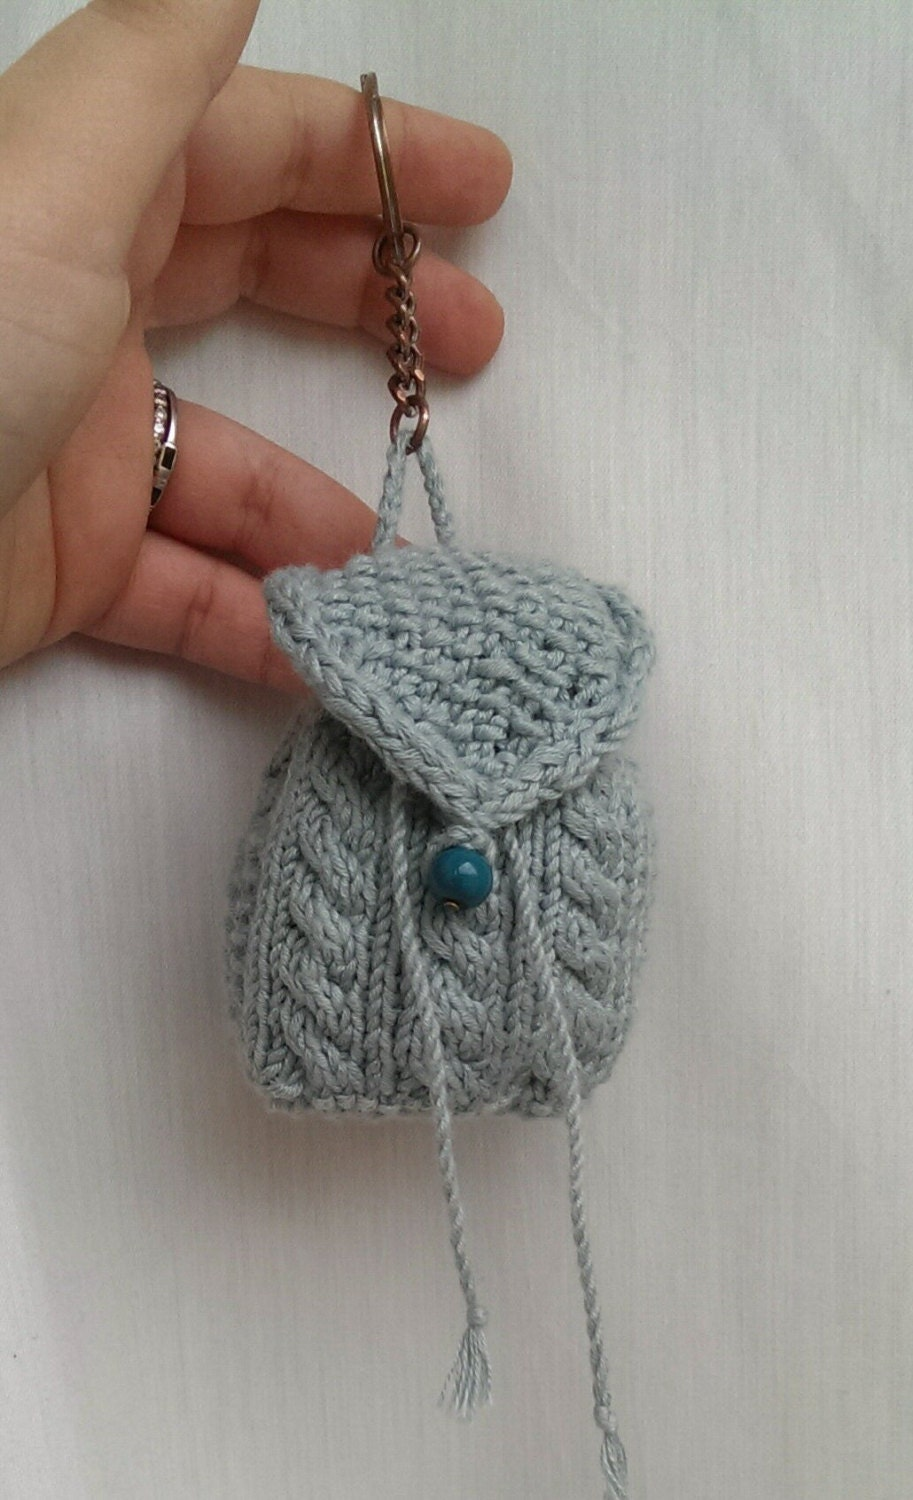 N2L Backpack Keyring knitting pattern